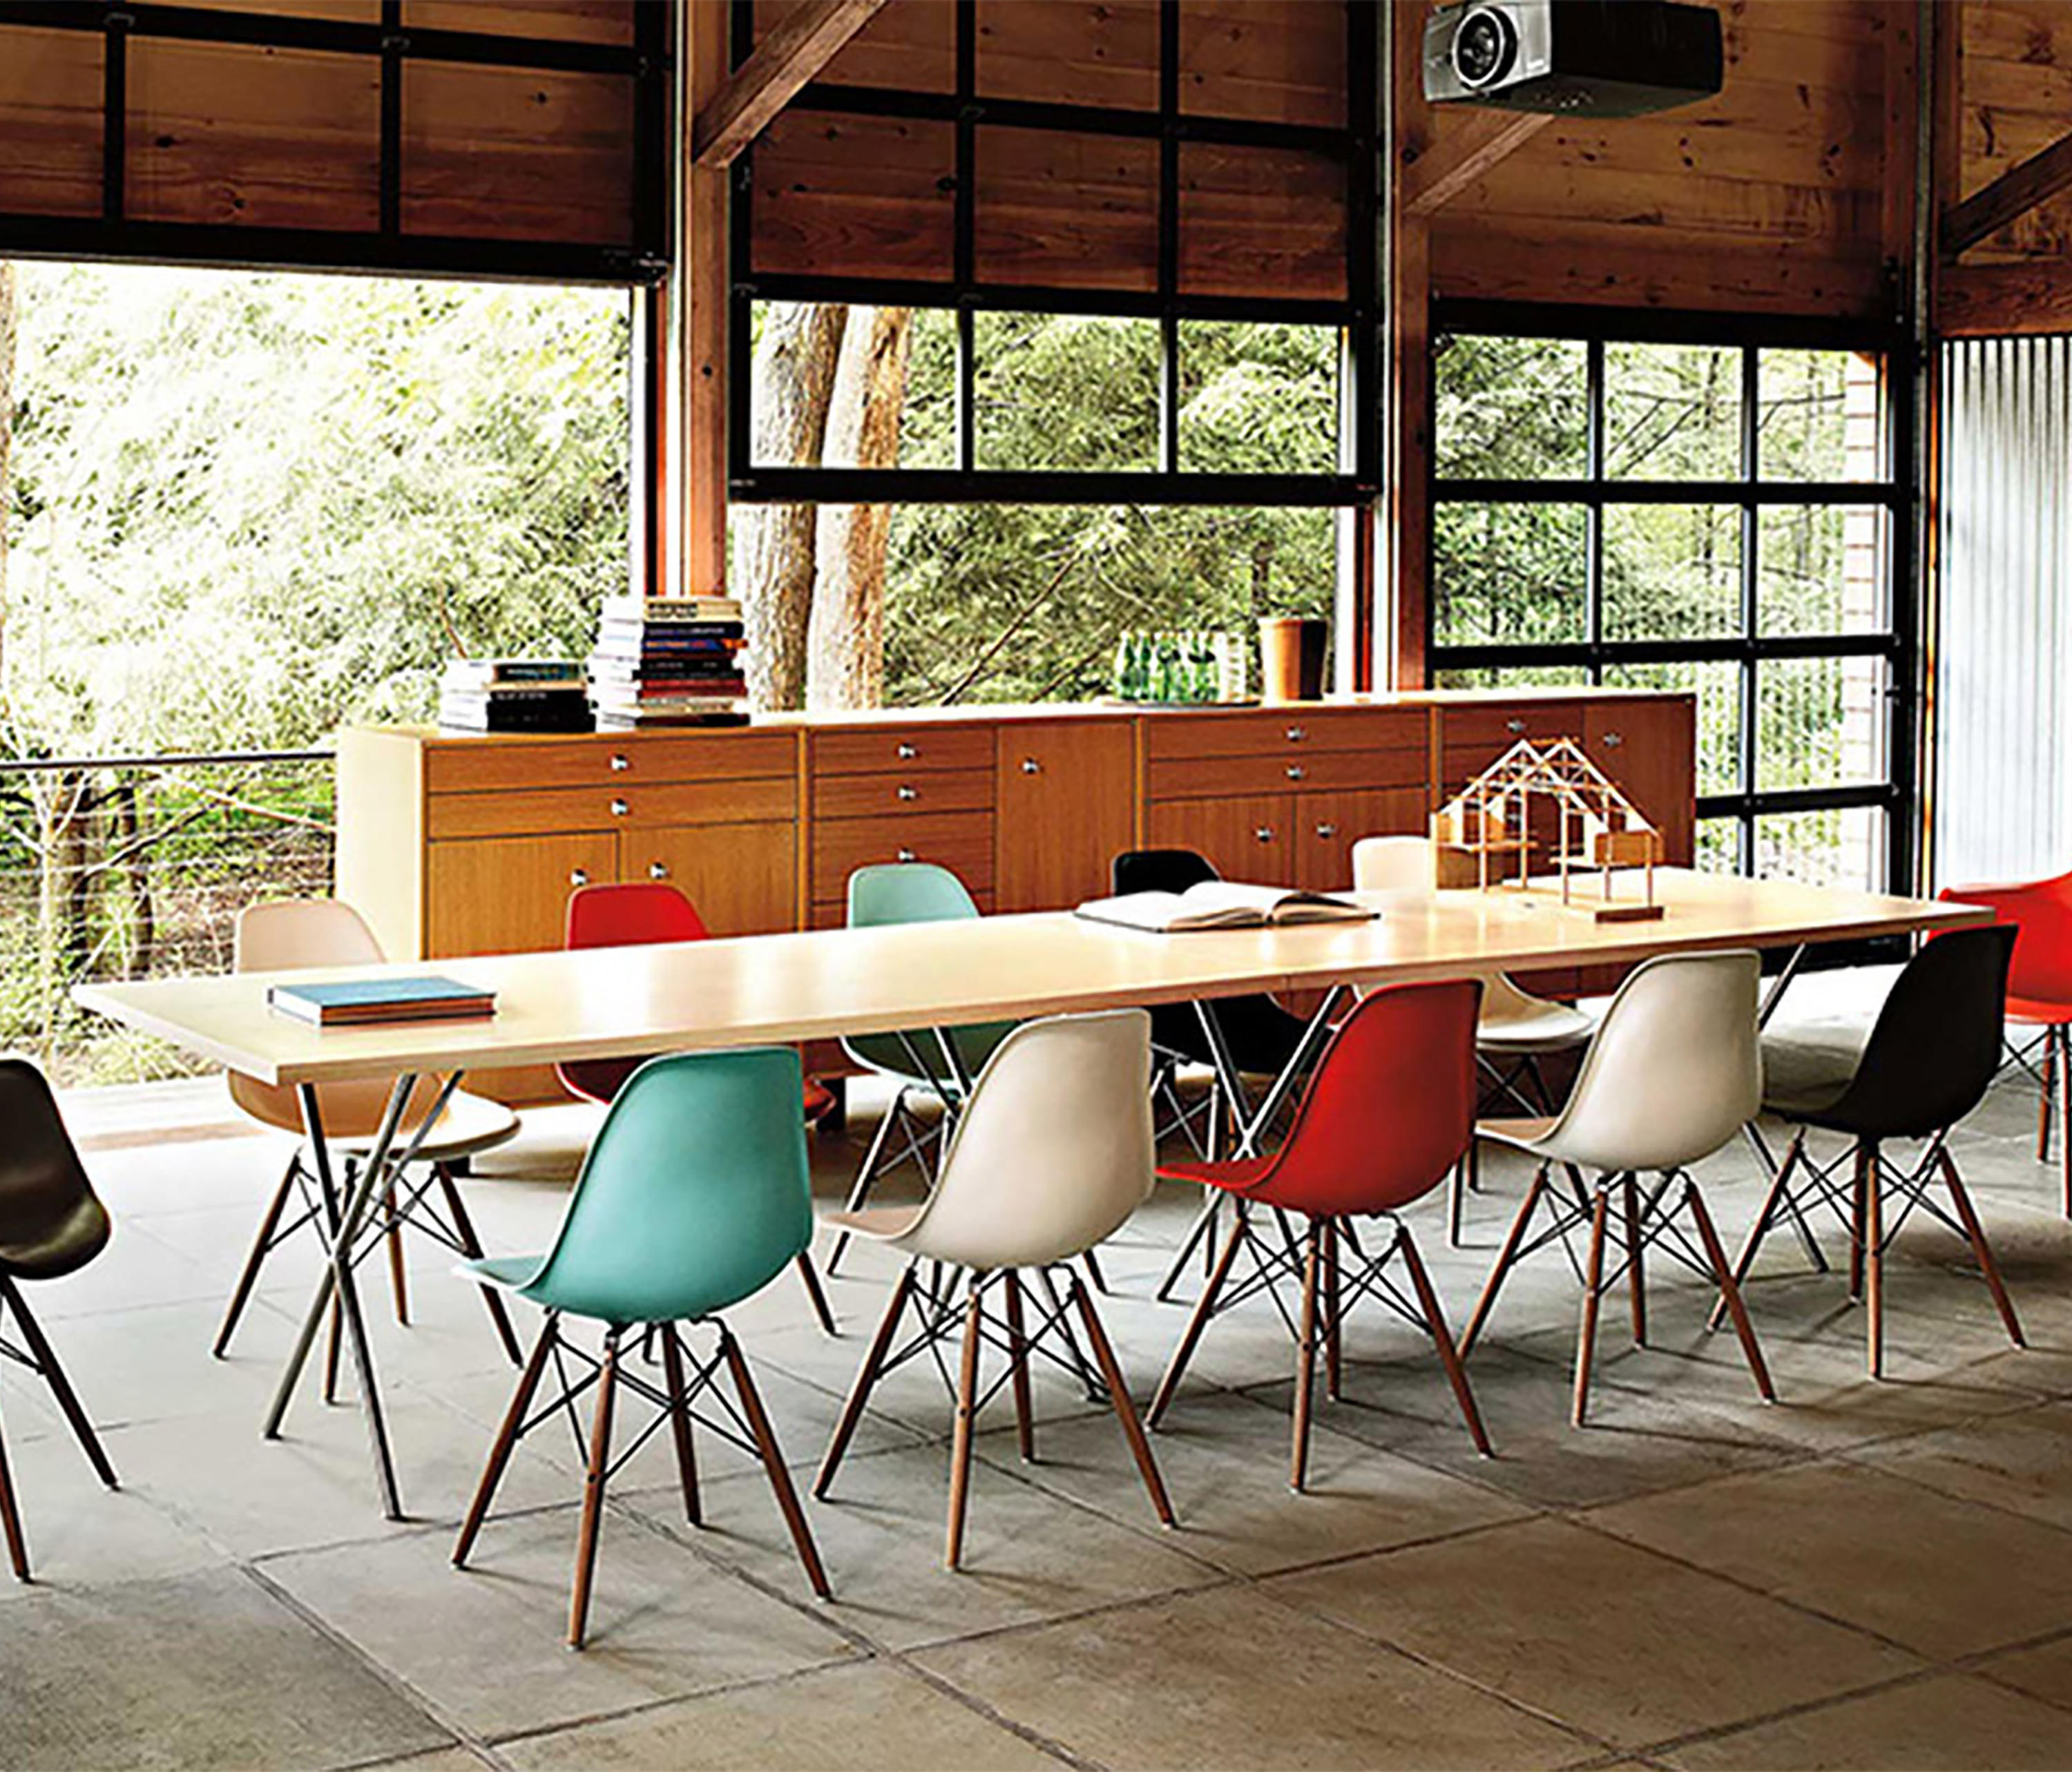 Family room herman miller eames chairs -  Eames Molded Plastic Side Chair By Herman Miller